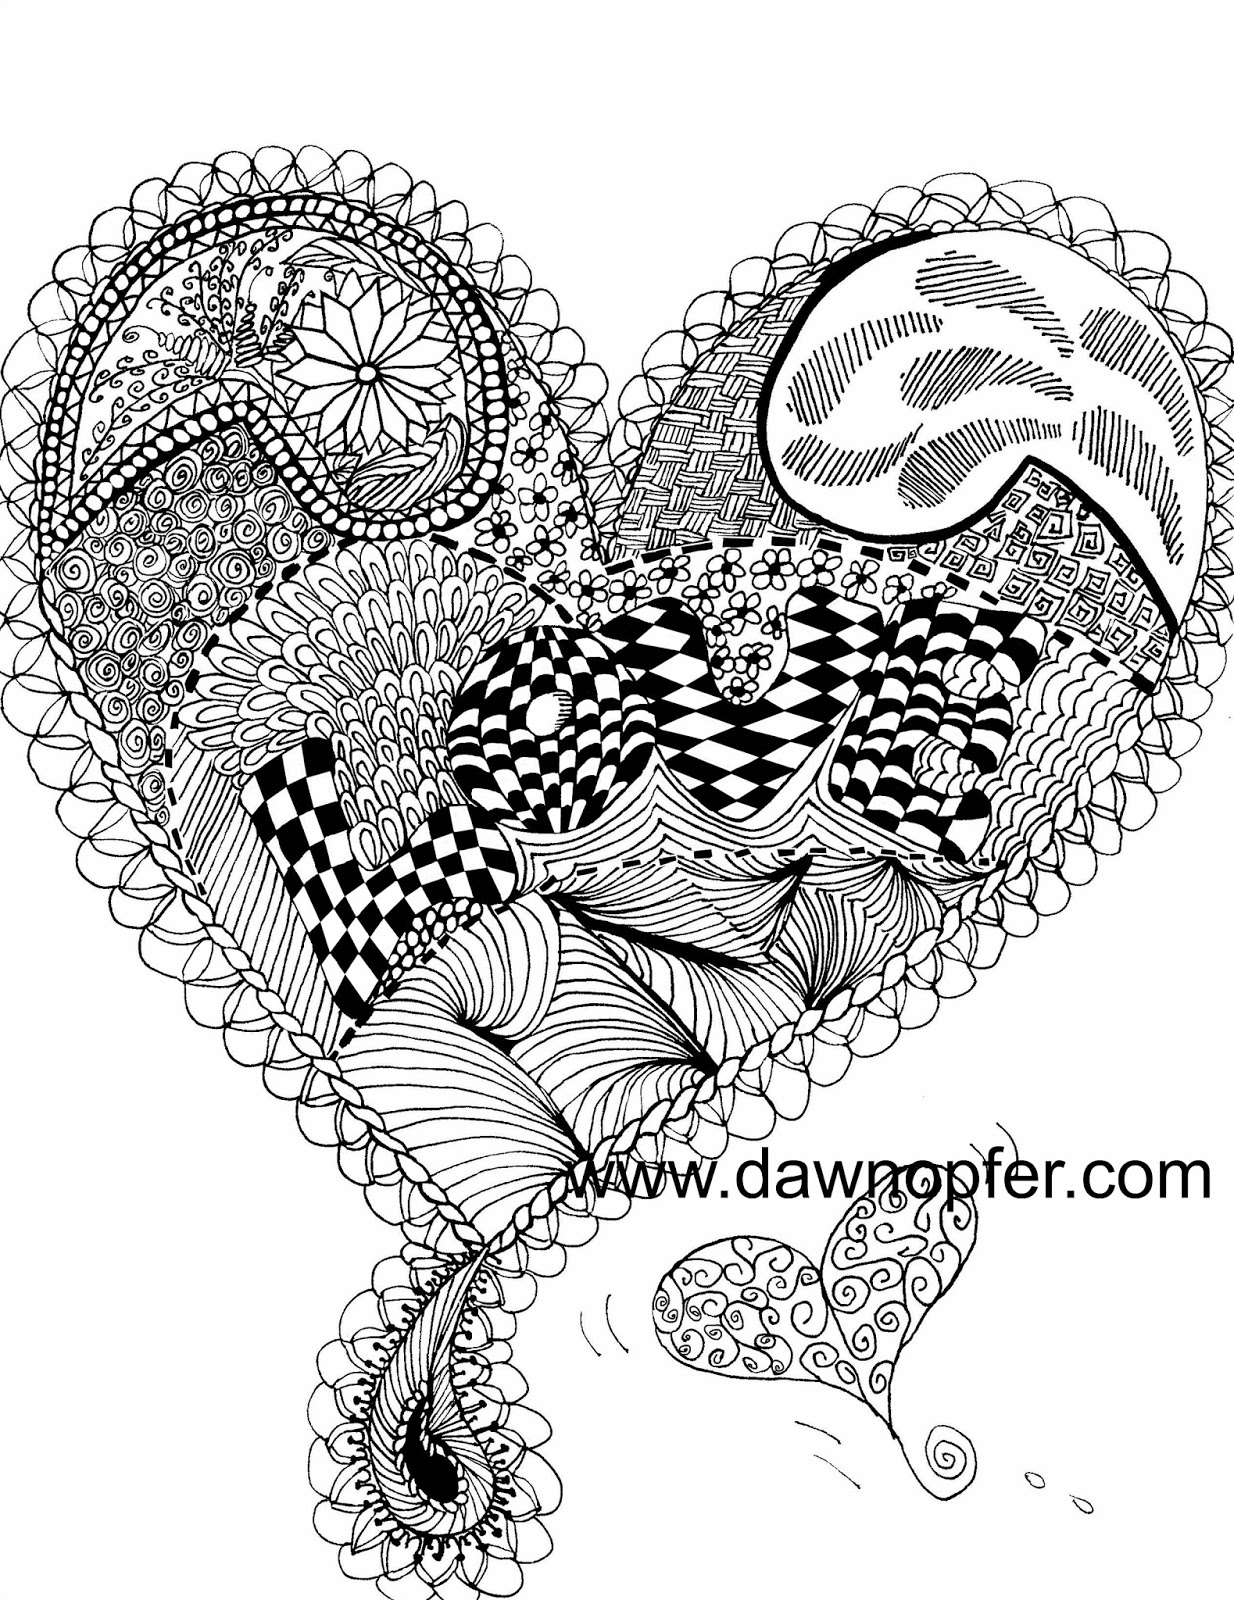 There\'s a little ART in everyone\'s HEART!: Love Heart Coloring Book Page